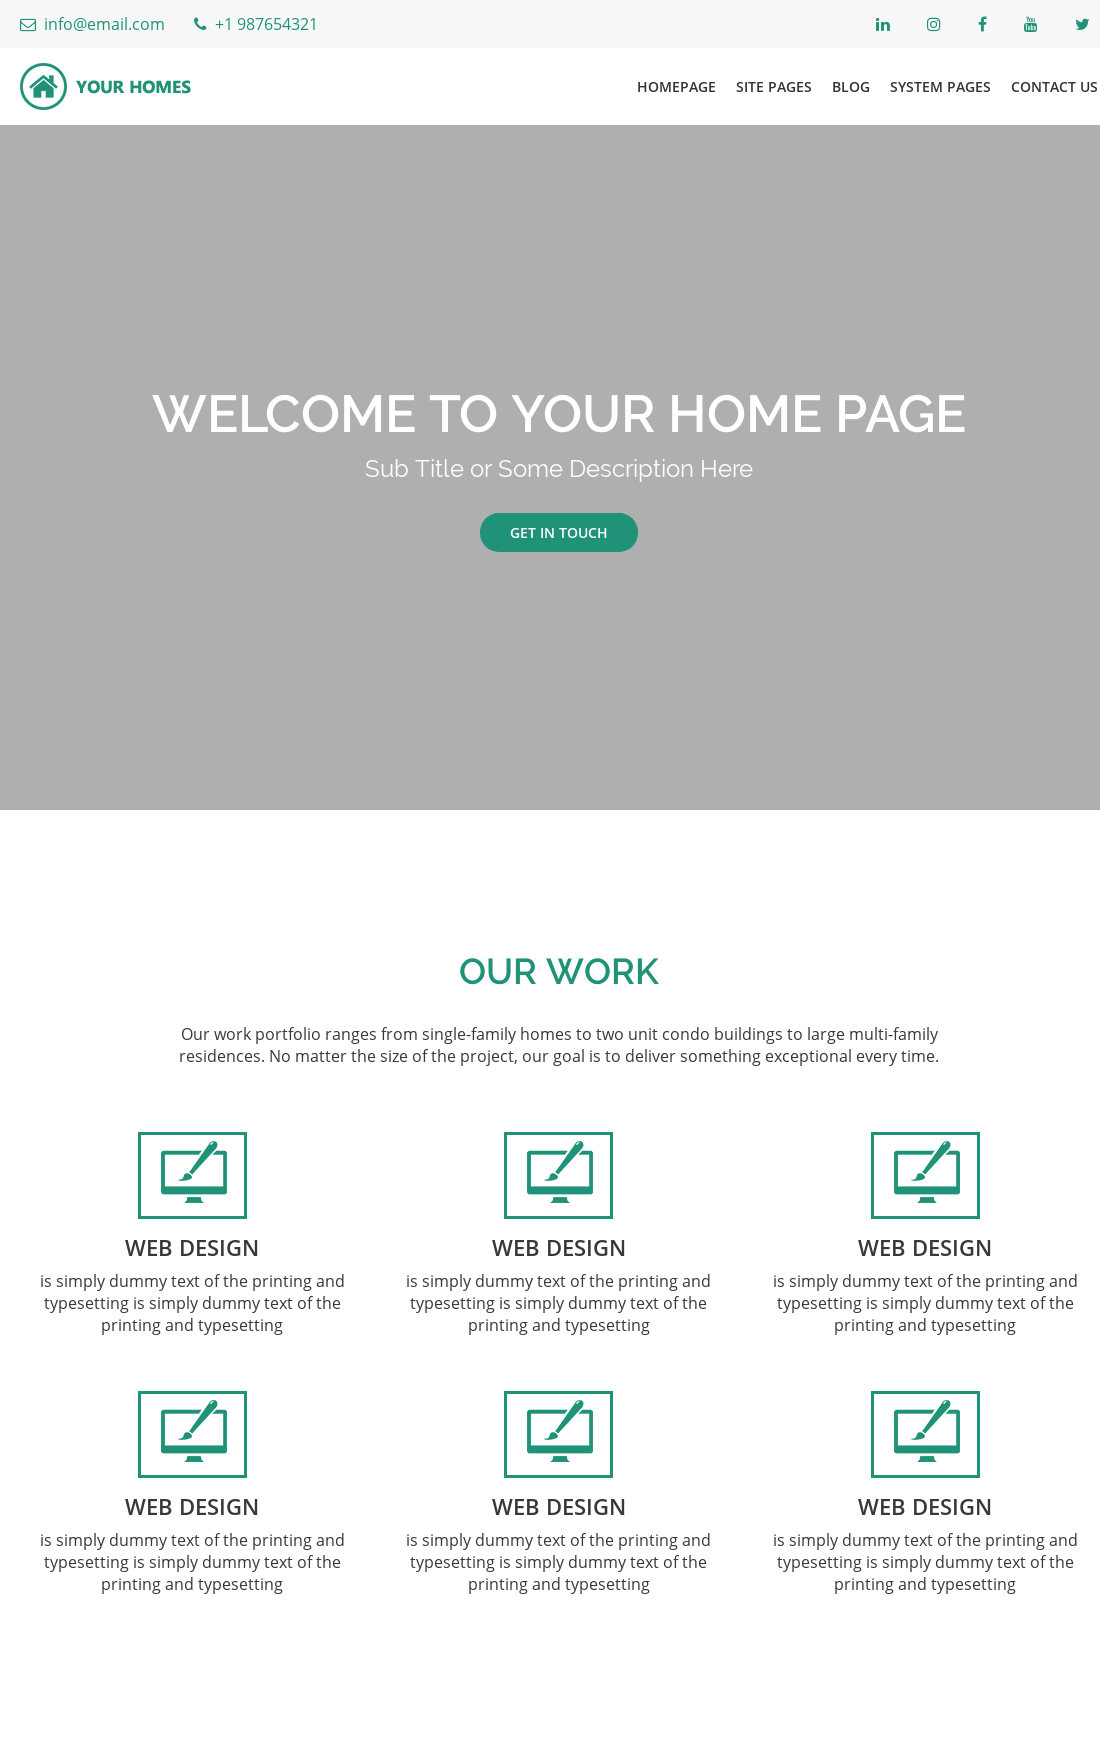 Your Home - Homepage (Video Banner) | HubSpot